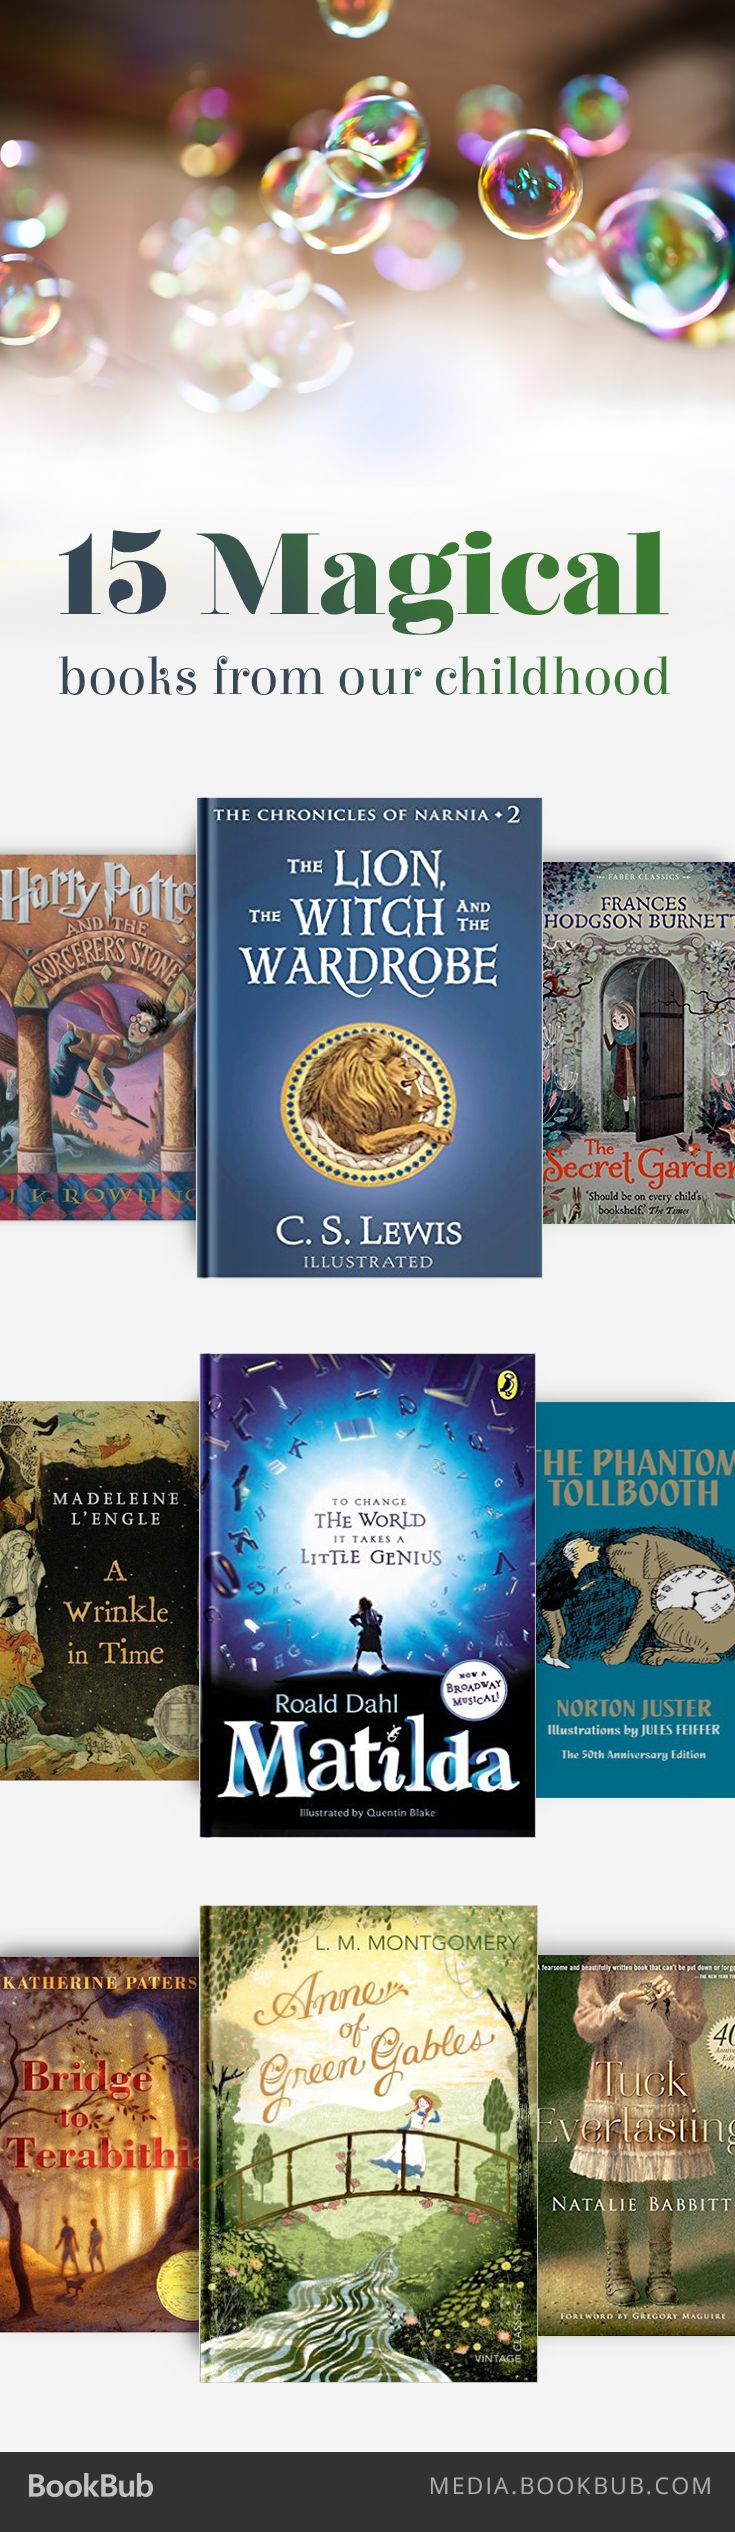 15 of the most magical books from our childhood, including The Lion, the Witch, and the Wardrobe by C. S. Lewis.